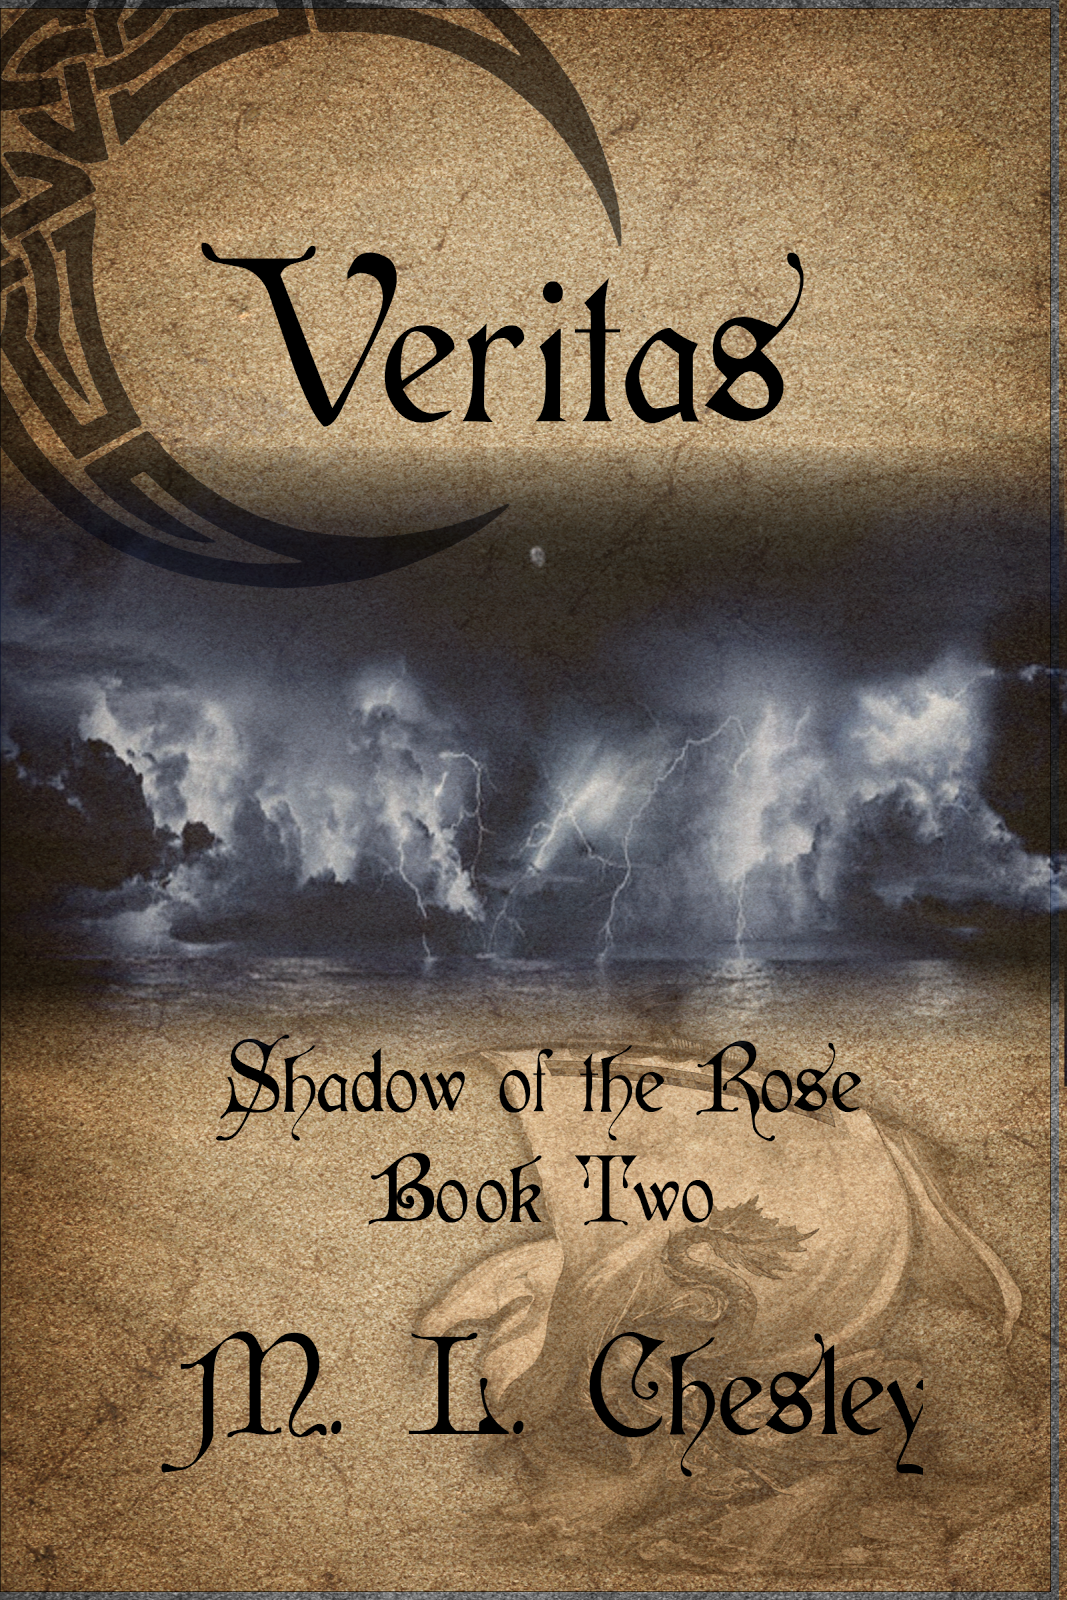 Veritas, Shadow of the Rose: Book Two